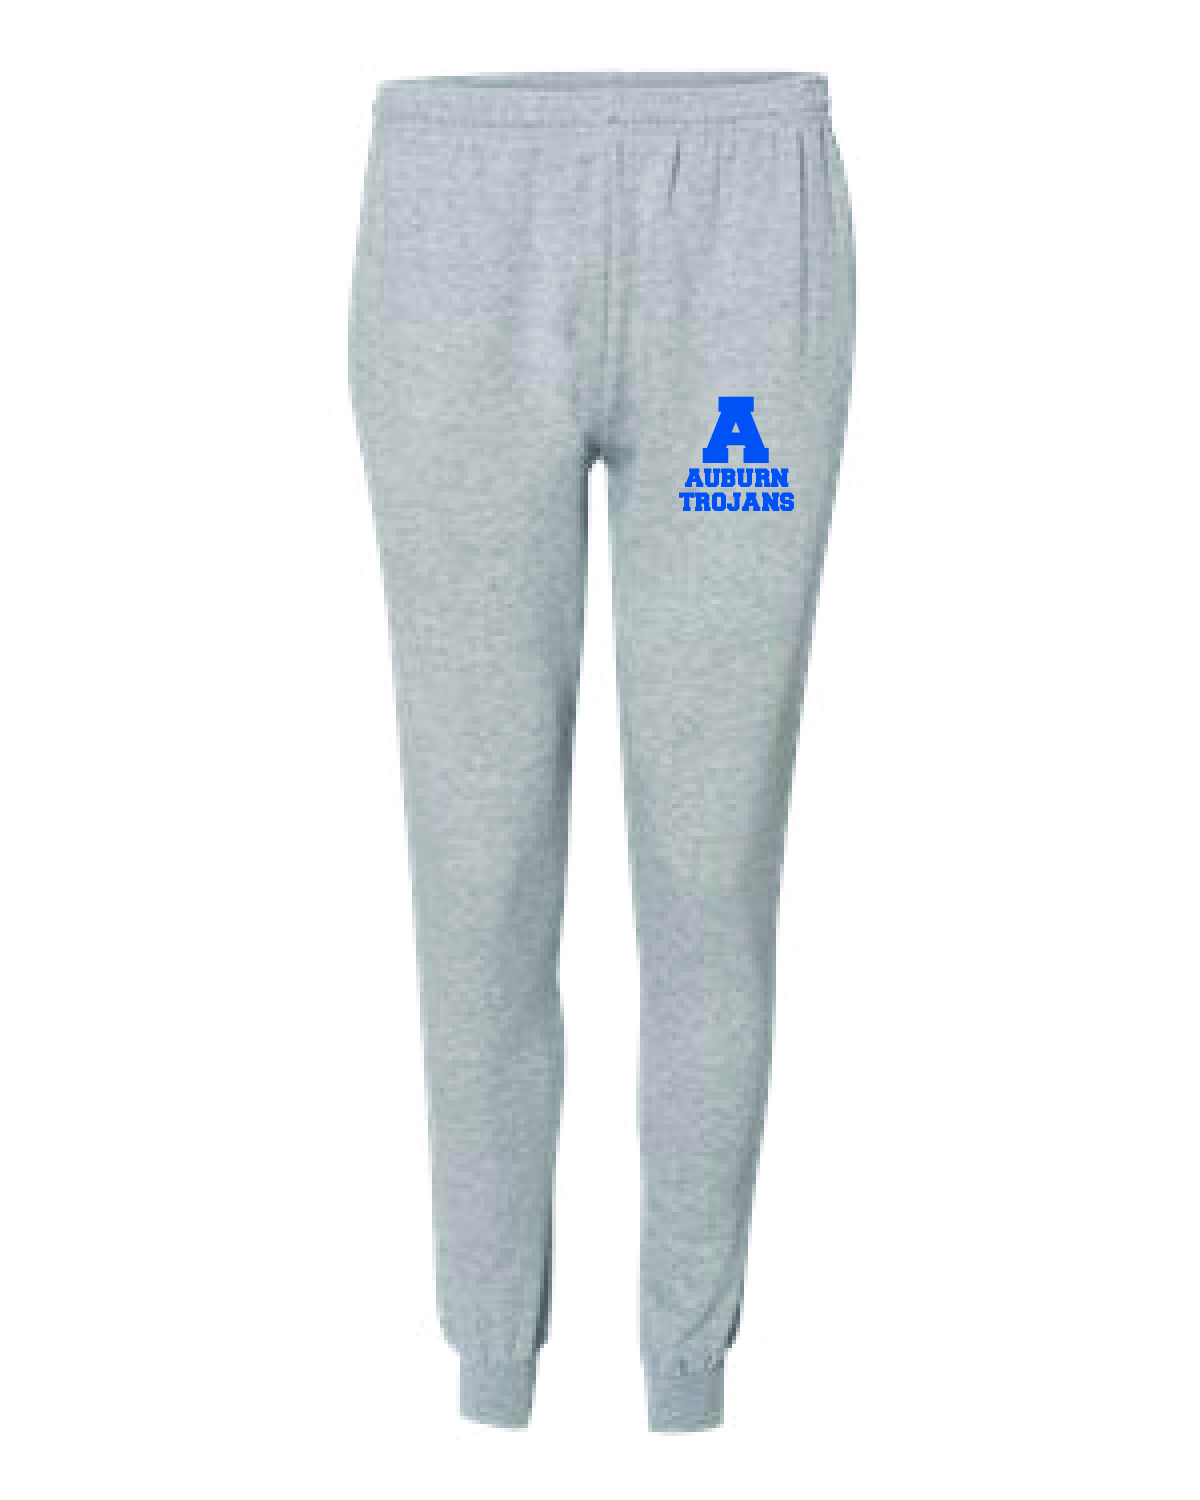 BELLA + CANVAS - Unisex Joggers- (MENS/UNISEX SIZING)